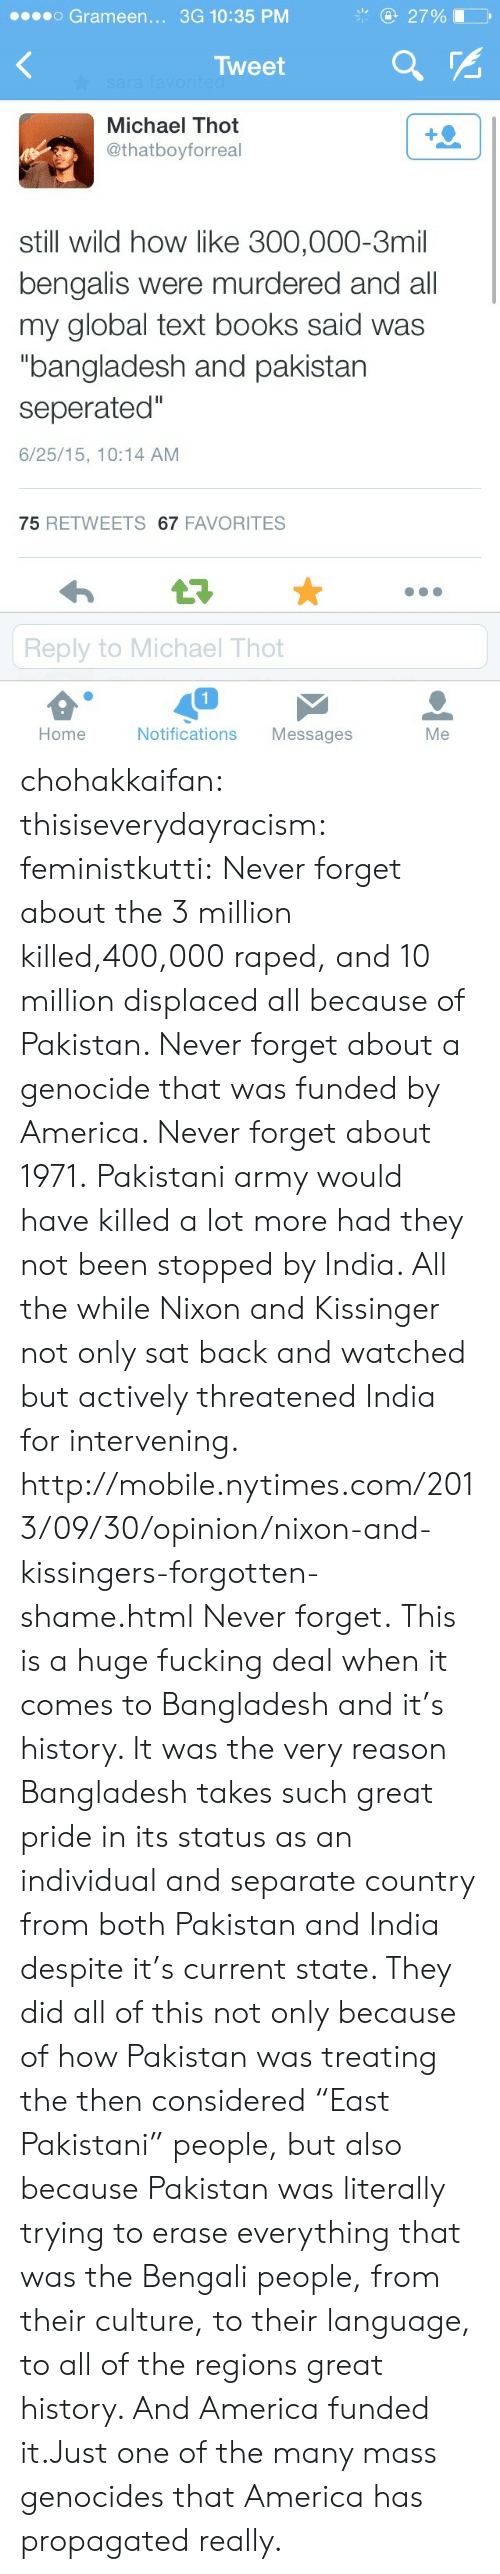 """Not Been: 27%  Grameen... 3G 10:35 PM  Tweet  sara favorited  Michael Thot  @thatboyforreal  still wild how like 300,000-3mil  bengalis were murdered and all  my global text books said was  """"bangladesh and pakistan  seperated""""  6/25/15, 10:14 AM  75 RETWEETS 67 FAVORITES  t7  Reply to Michael Thot  Home  Notifications  Messages  Me chohakkaifan:  thisiseverydayracism:  feministkutti:  Never forget about the 3 million killed,400,000 raped, and 10 million displaced all because of Pakistan. Never forget about a genocide that was funded by America. Never forget about 1971.  Pakistani army would have killed a lot more had they not been stopped by India.  All the while Nixon and Kissinger not only sat back and watched but actively threatened India for intervening.  http://mobile.nytimes.com/2013/09/30/opinion/nixon-and-kissingers-forgotten-shame.html Never forget.   This is a huge fucking deal when it comes to Bangladesh and it's history. It was the very reason Bangladesh takes such great pride in its status as an individual and separate country from both Pakistan and India despite it's current state. They did all of this not only because of how Pakistan was treating the then considered""""East Pakistani"""" people, but also because Pakistan was literally trying to erase everything that was the Bengali people, from their culture, to their language, to all of the regions great history. And America funded it.Just one of the many mass genocides that America has propagated really."""